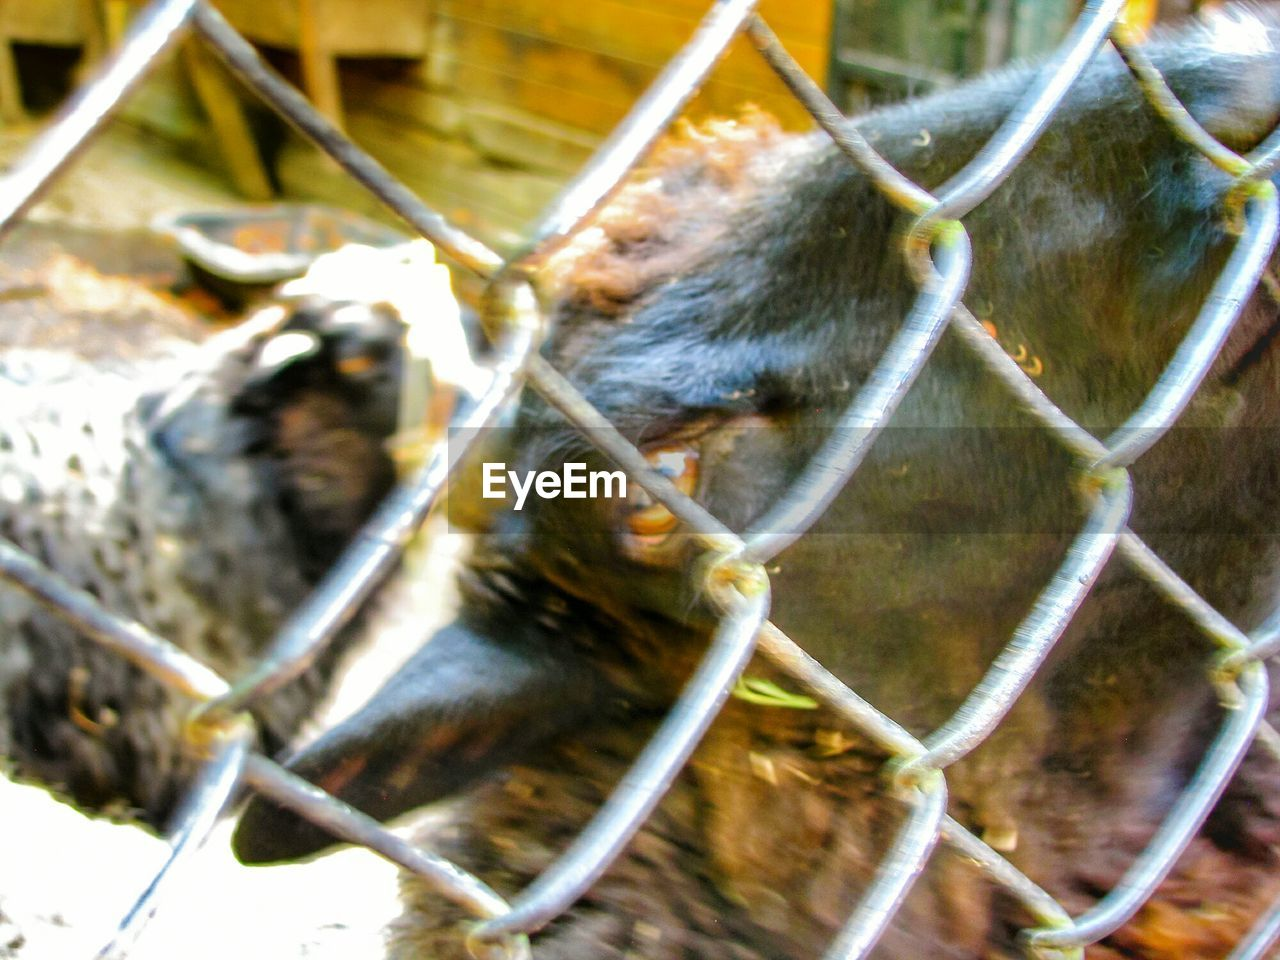 animal, animal themes, mammal, vertebrate, one animal, animal wildlife, no people, fence, close-up, animals in captivity, monkey, day, chainlink fence, animal body part, primate, barrier, boundary, nature, cage, zoo, animal head